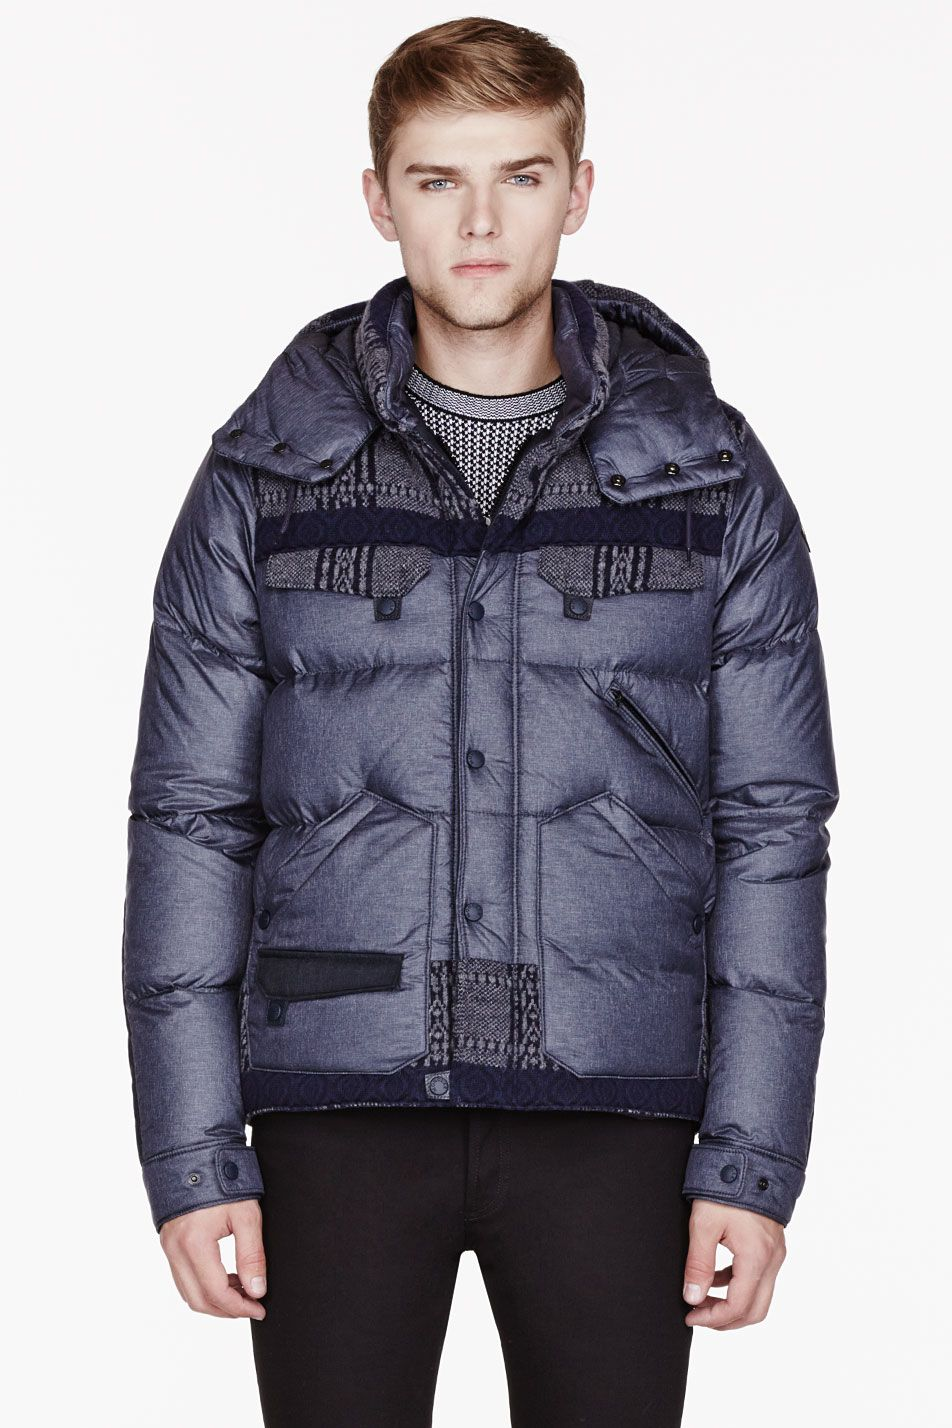 moncler white mountaineering